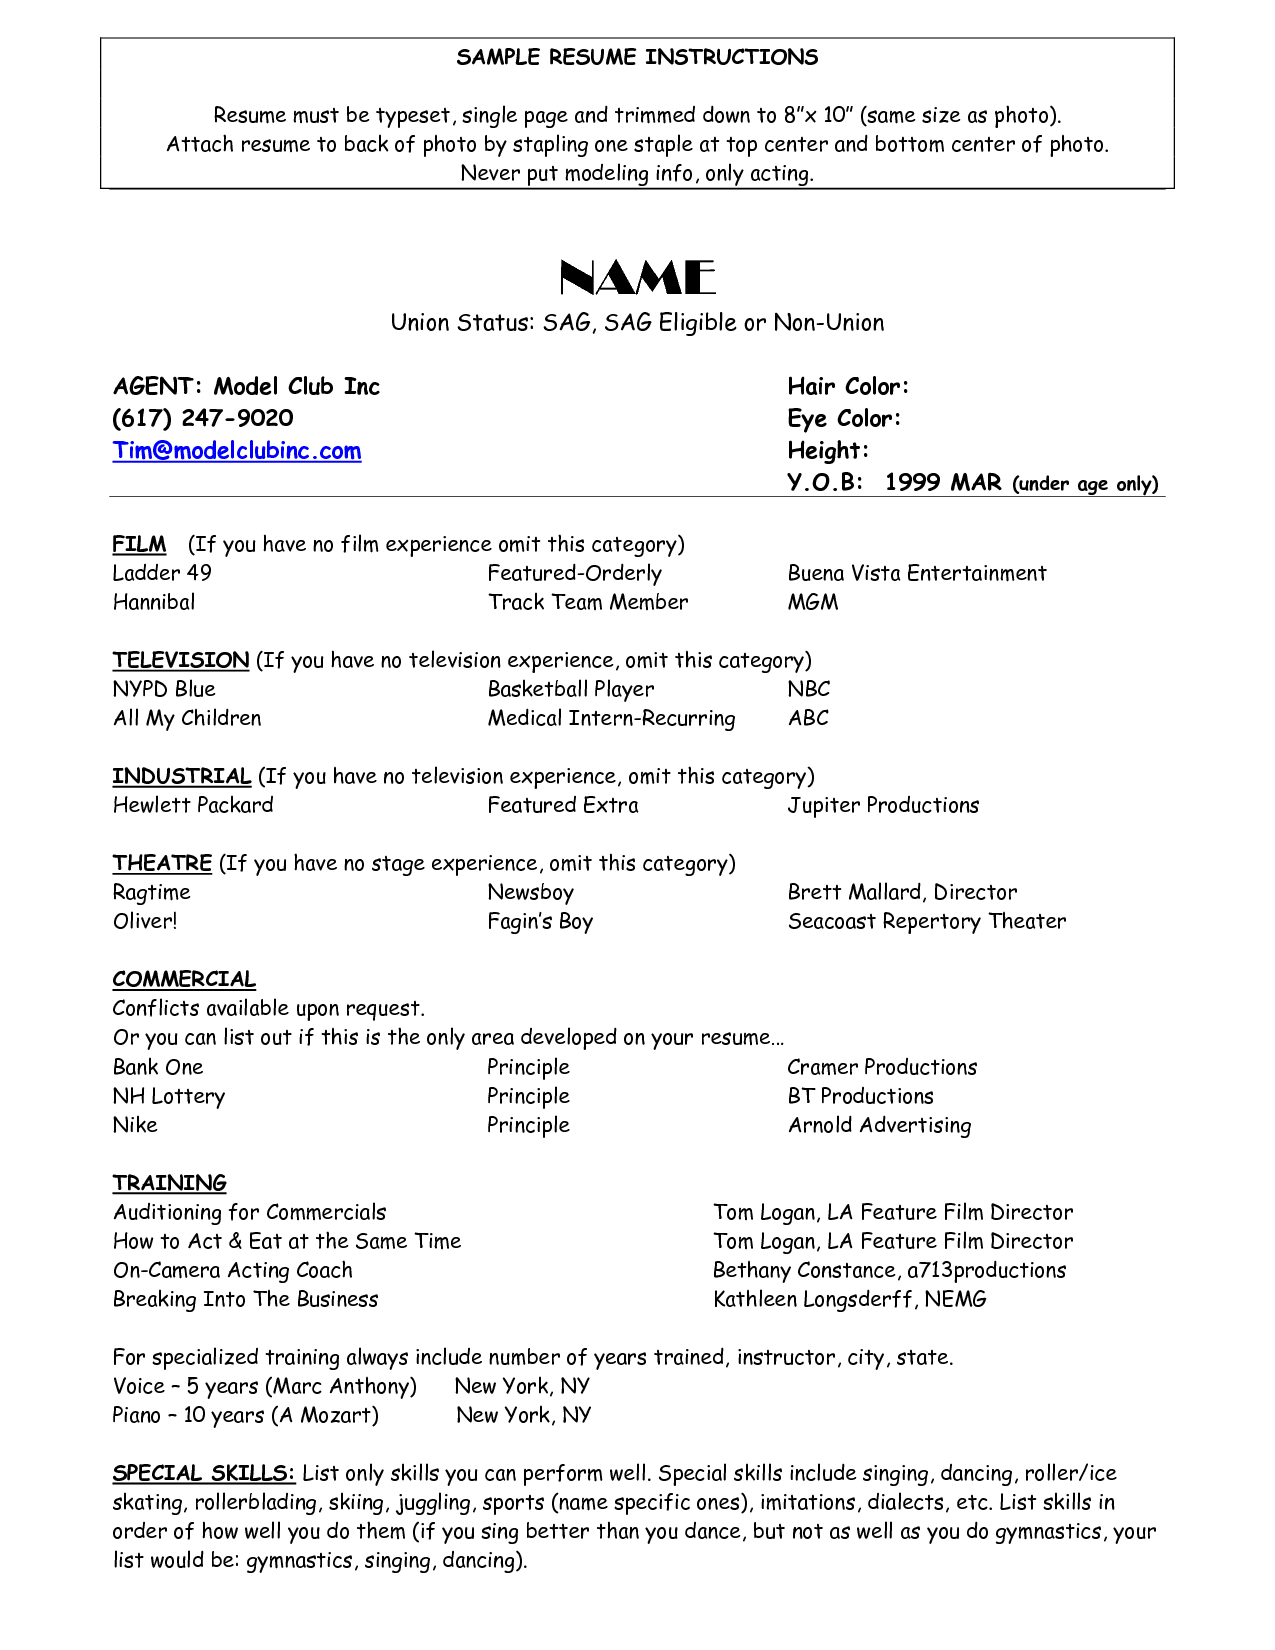 Work Resume Template Resume For Child Actor  Scope Of Work Template  Special Needs